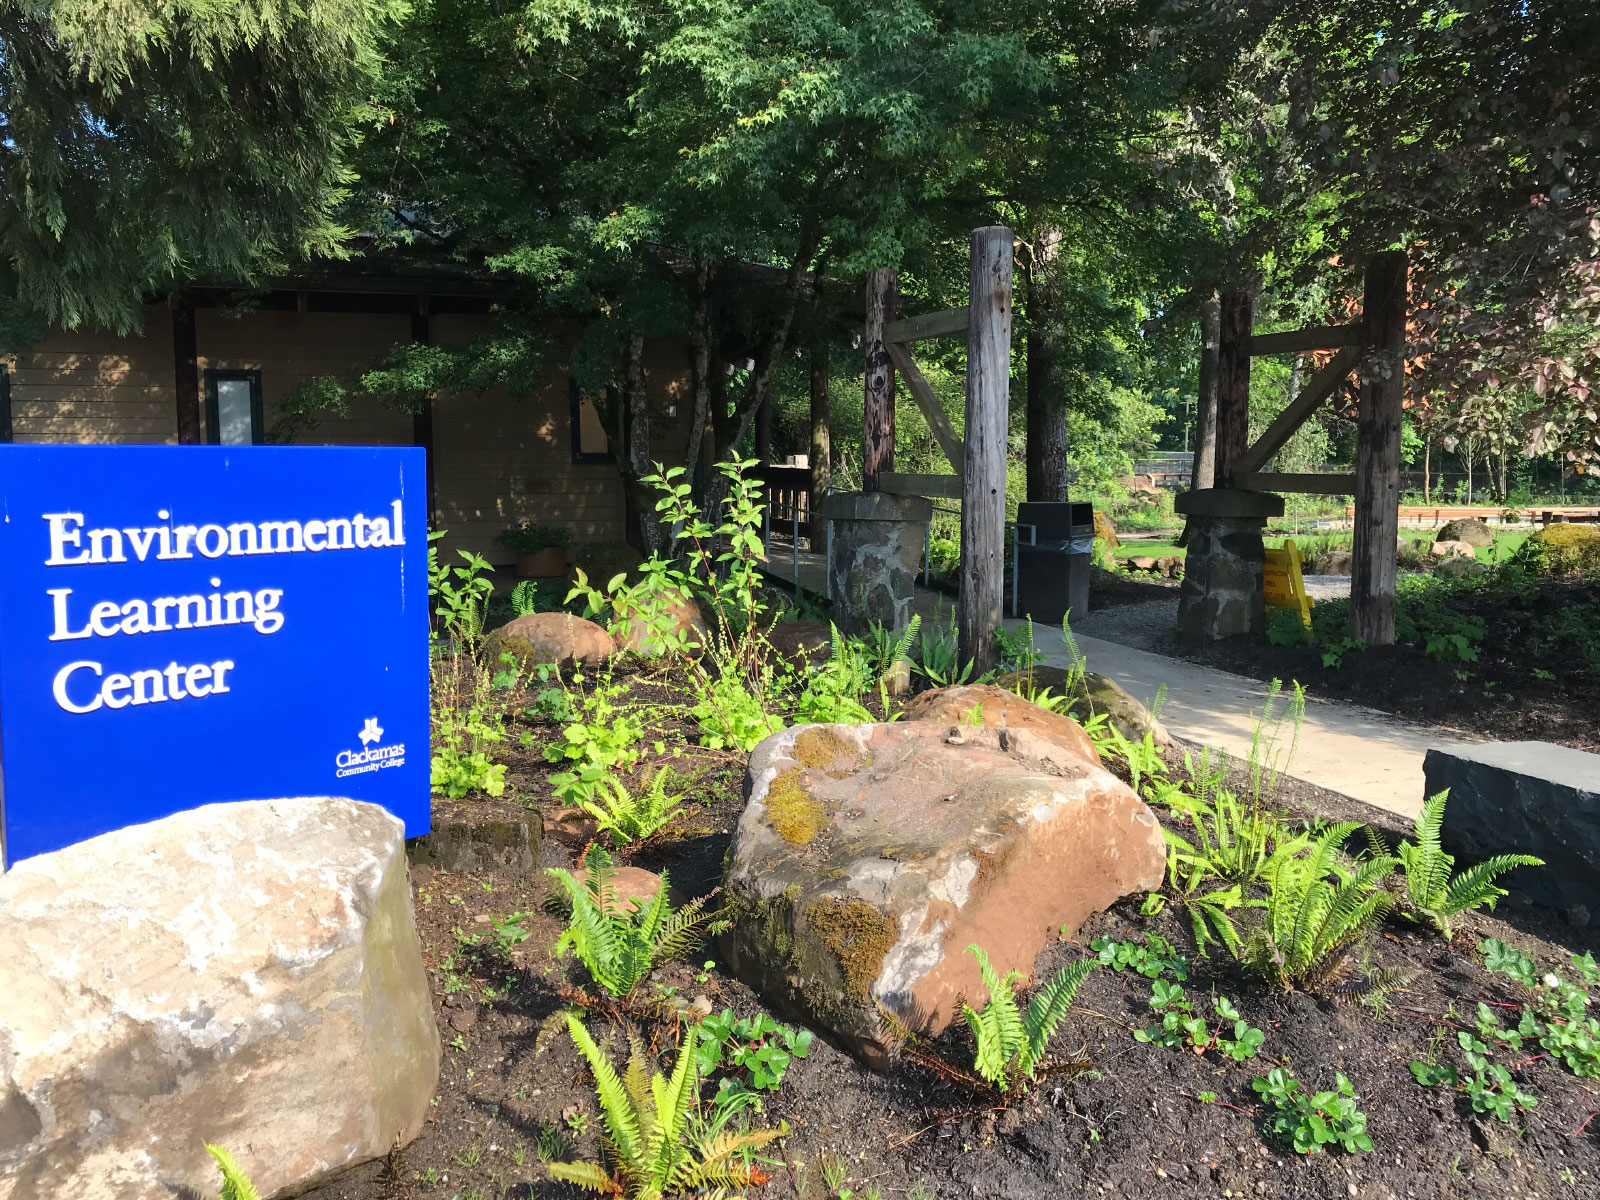 The Environmental Learning Center's blue entrance sign, surrounded by rocks and greenery, just outside Lakeside Hall, at the Oregon City campus